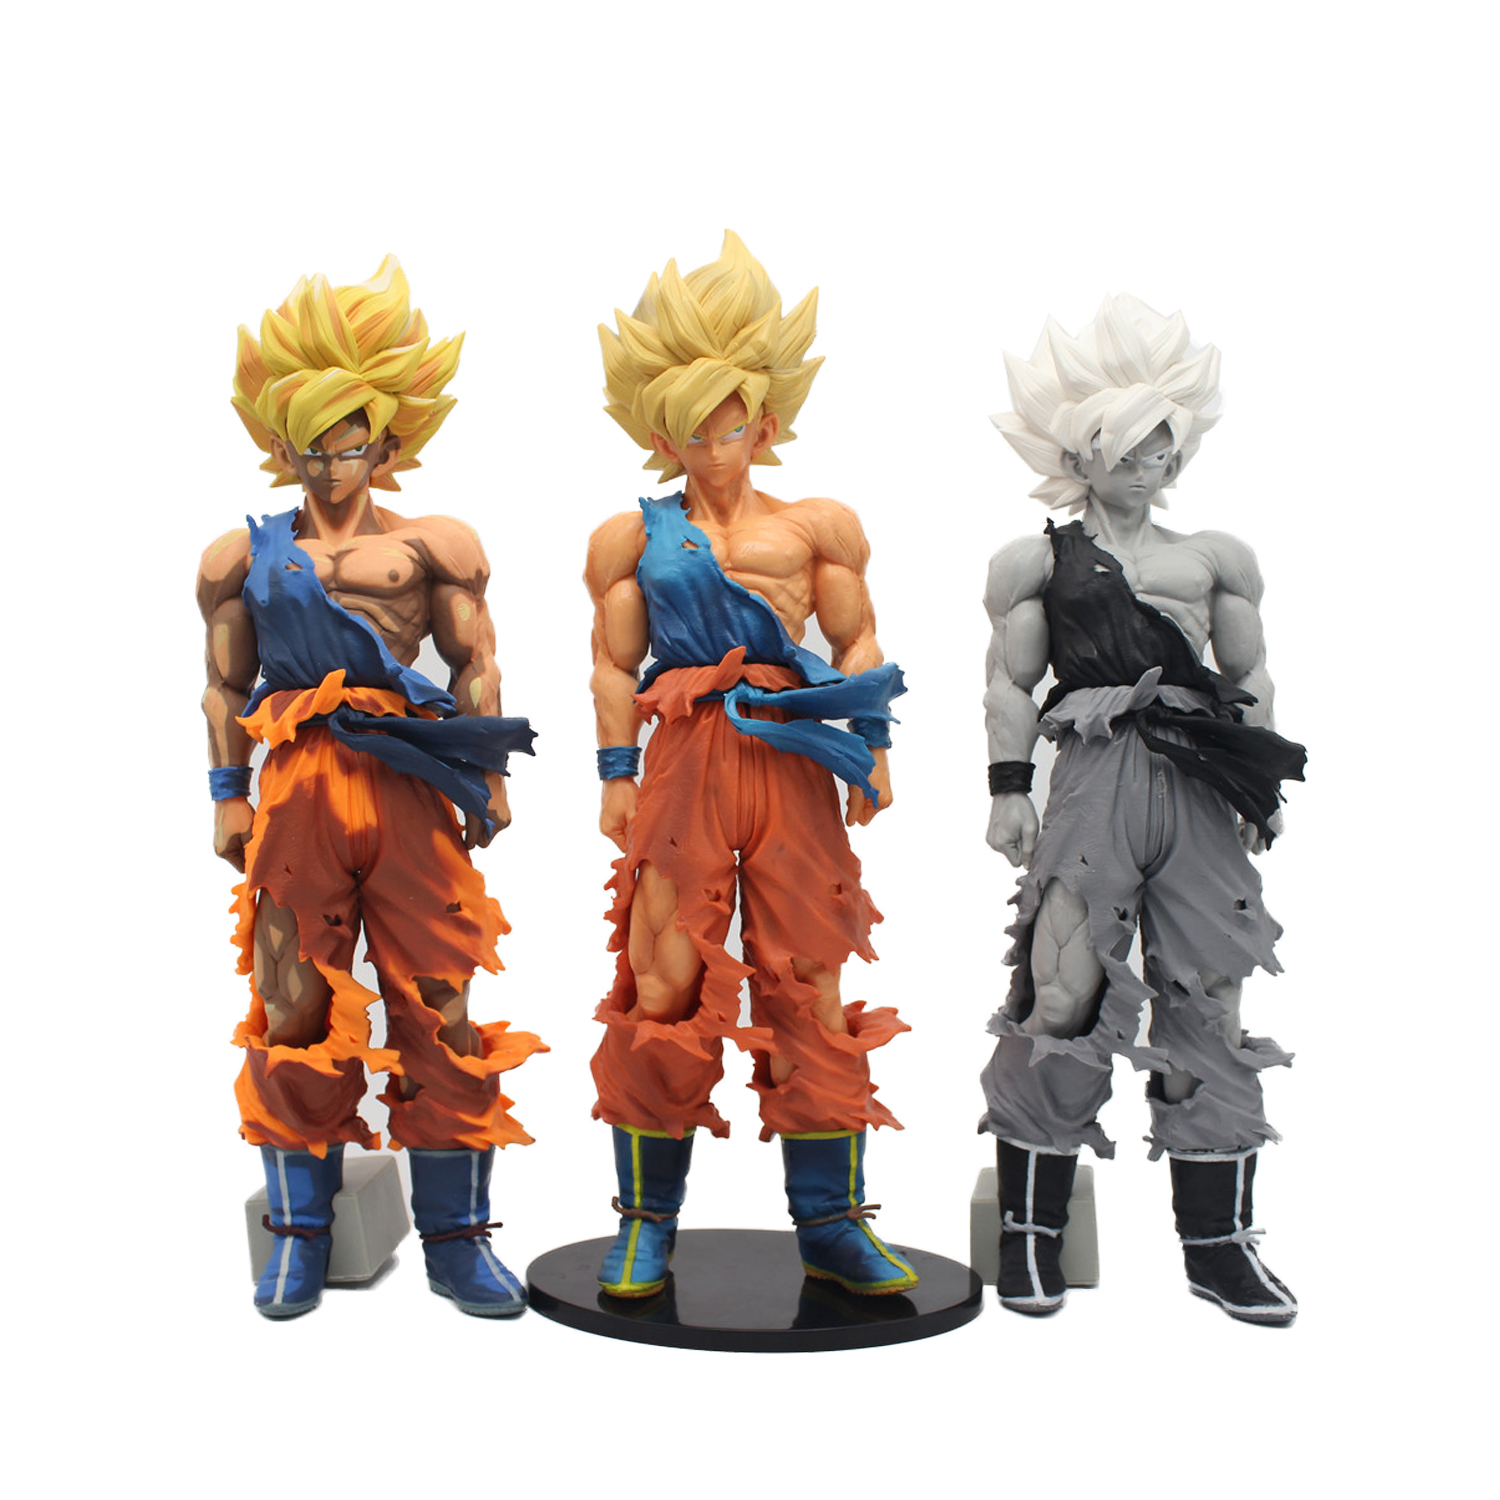 Dragon Ball Z 34 cm Dragon Ball Son Goku MSP Kakarotto Super Saiyan bataille dégâts figurine jouets poupées